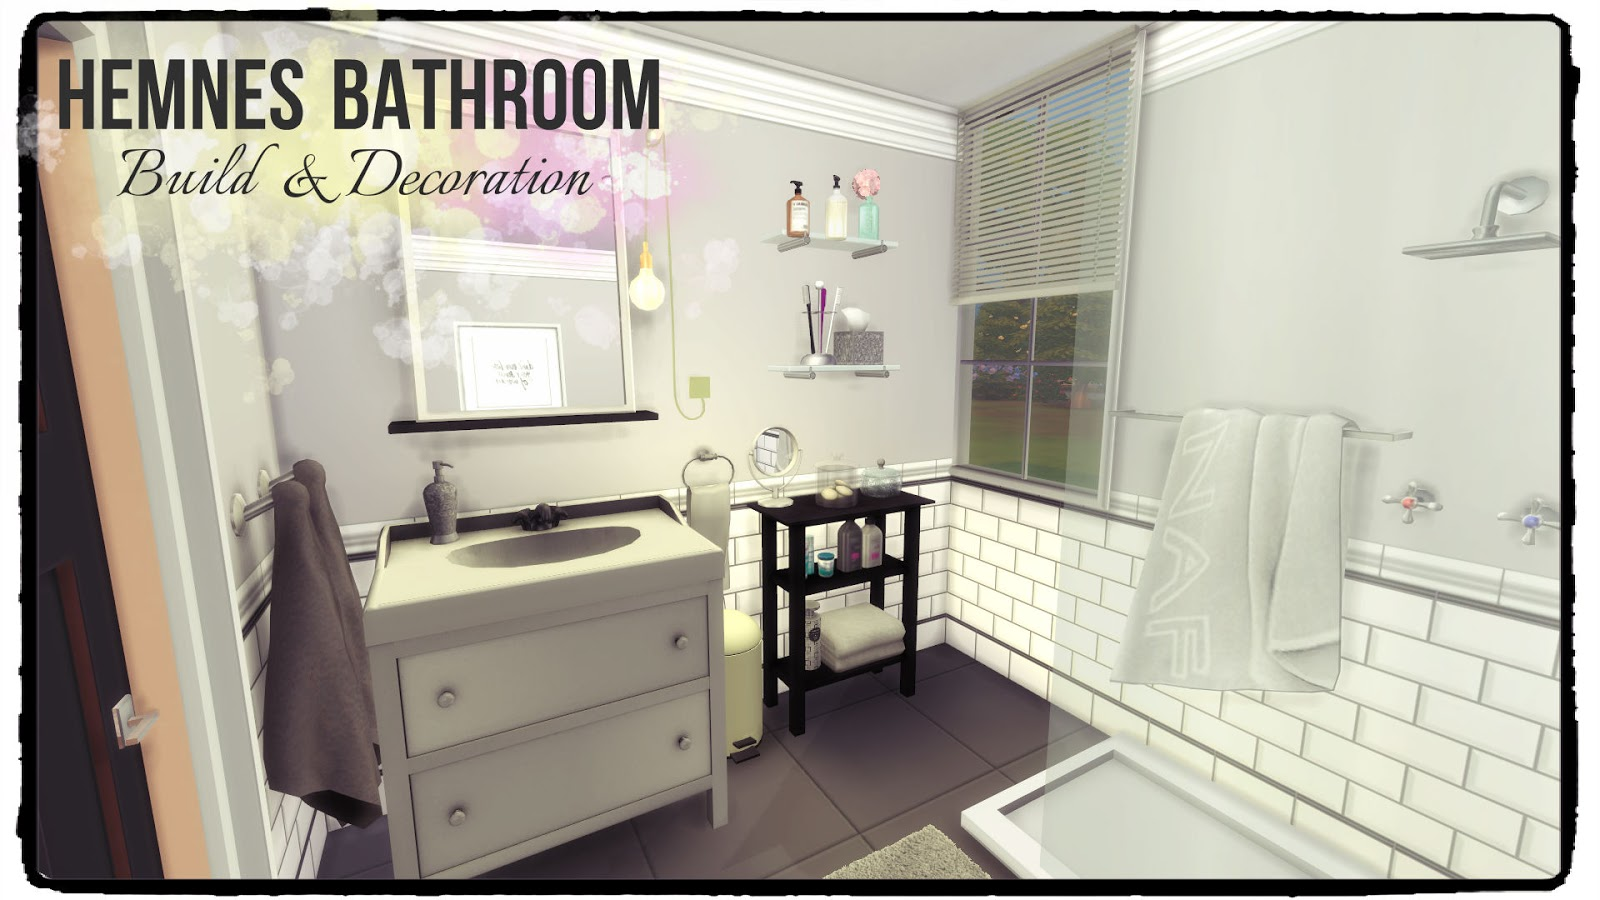 This mansion for a celebrity family, features 5 bedrooms, 7 bathrooms, garden, pool, and garage 1st floor: Sims 4 - Hemnes Bathroom - Dinha